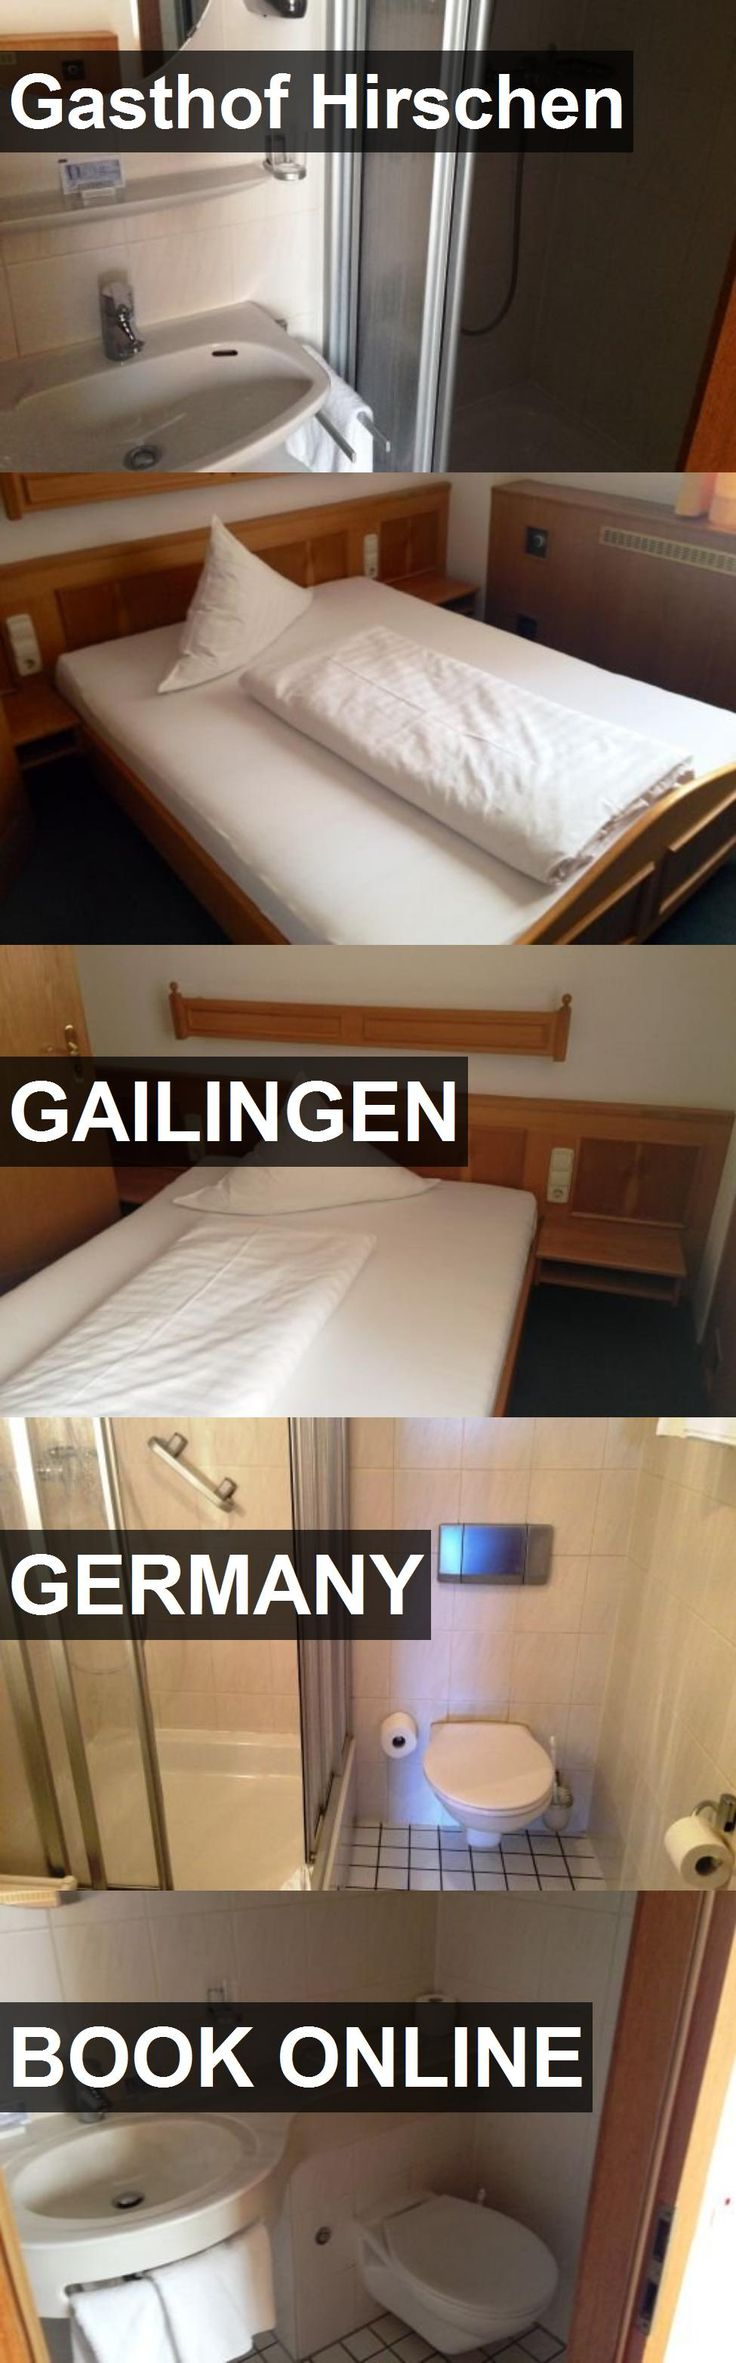 Hotel Gasthof Hirschen in Gailingen, Germany. For more information, photos, reviews and best prices please follow the link. #Germany #Gailingen #travel #vacation #hotel